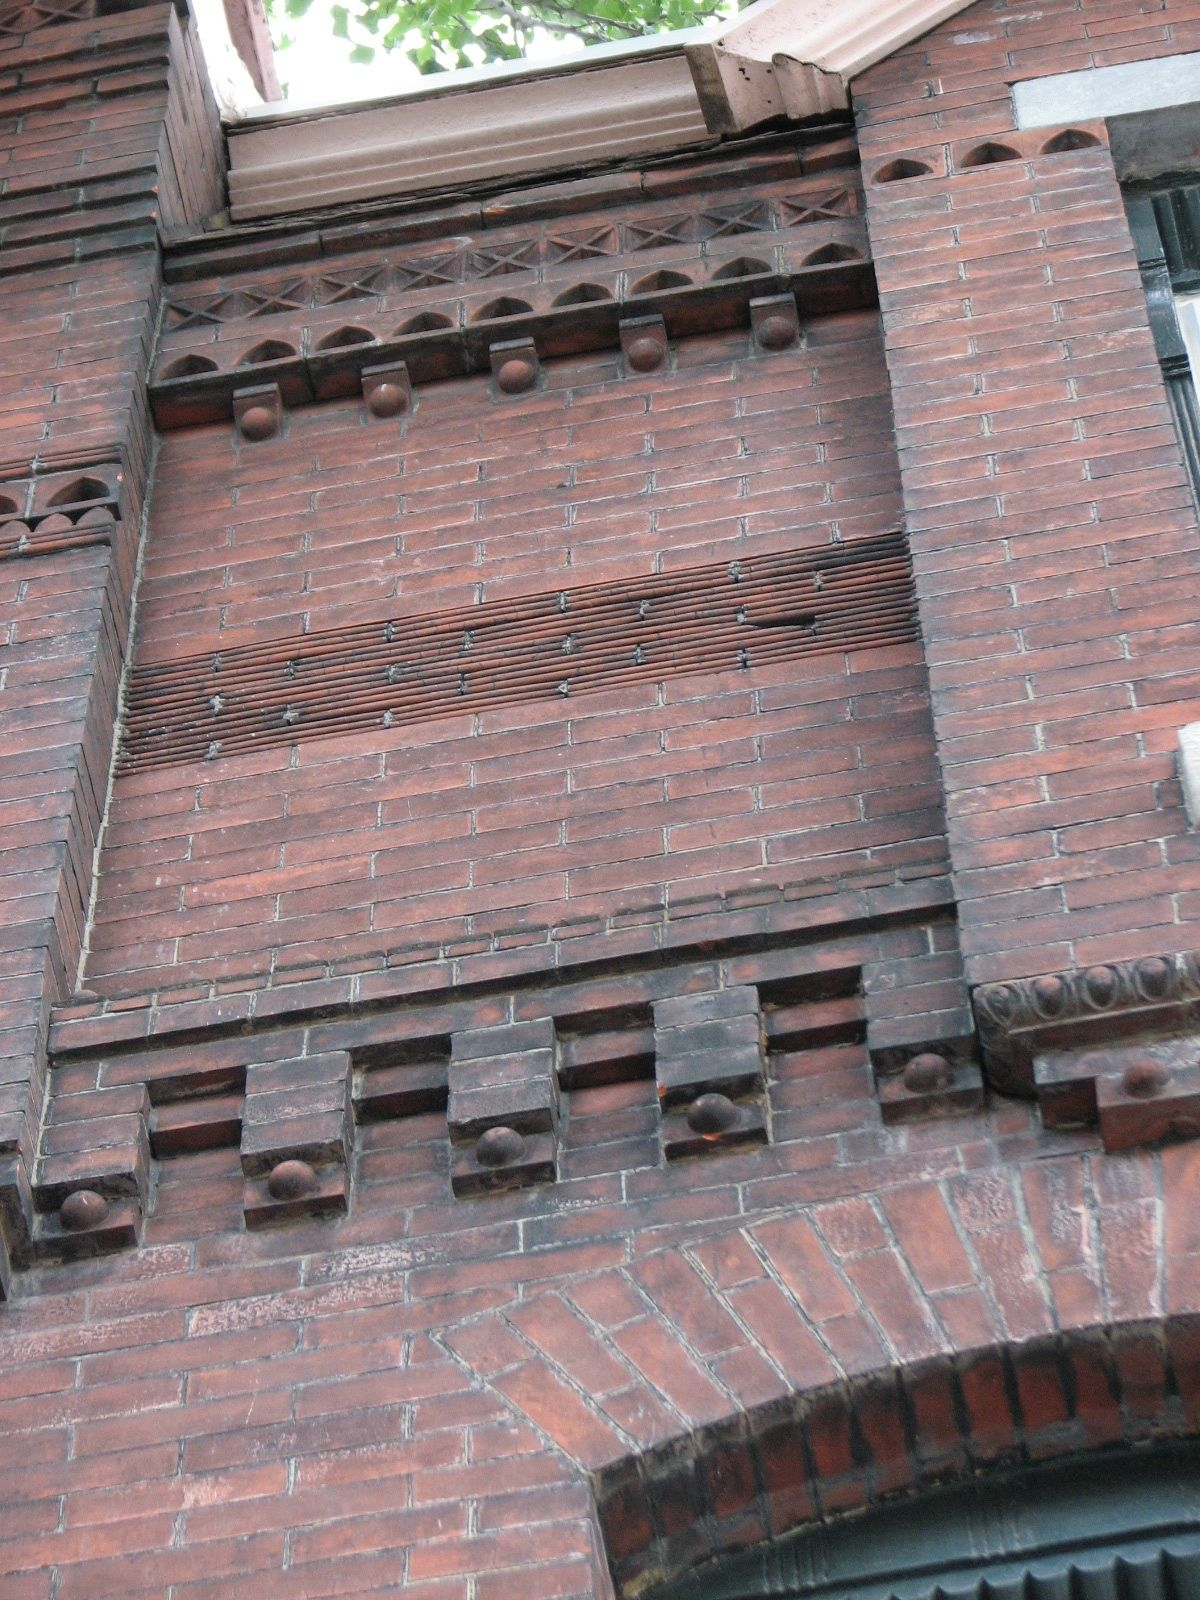 A variety of fine masonry work is found throughout the old Windsor Square.